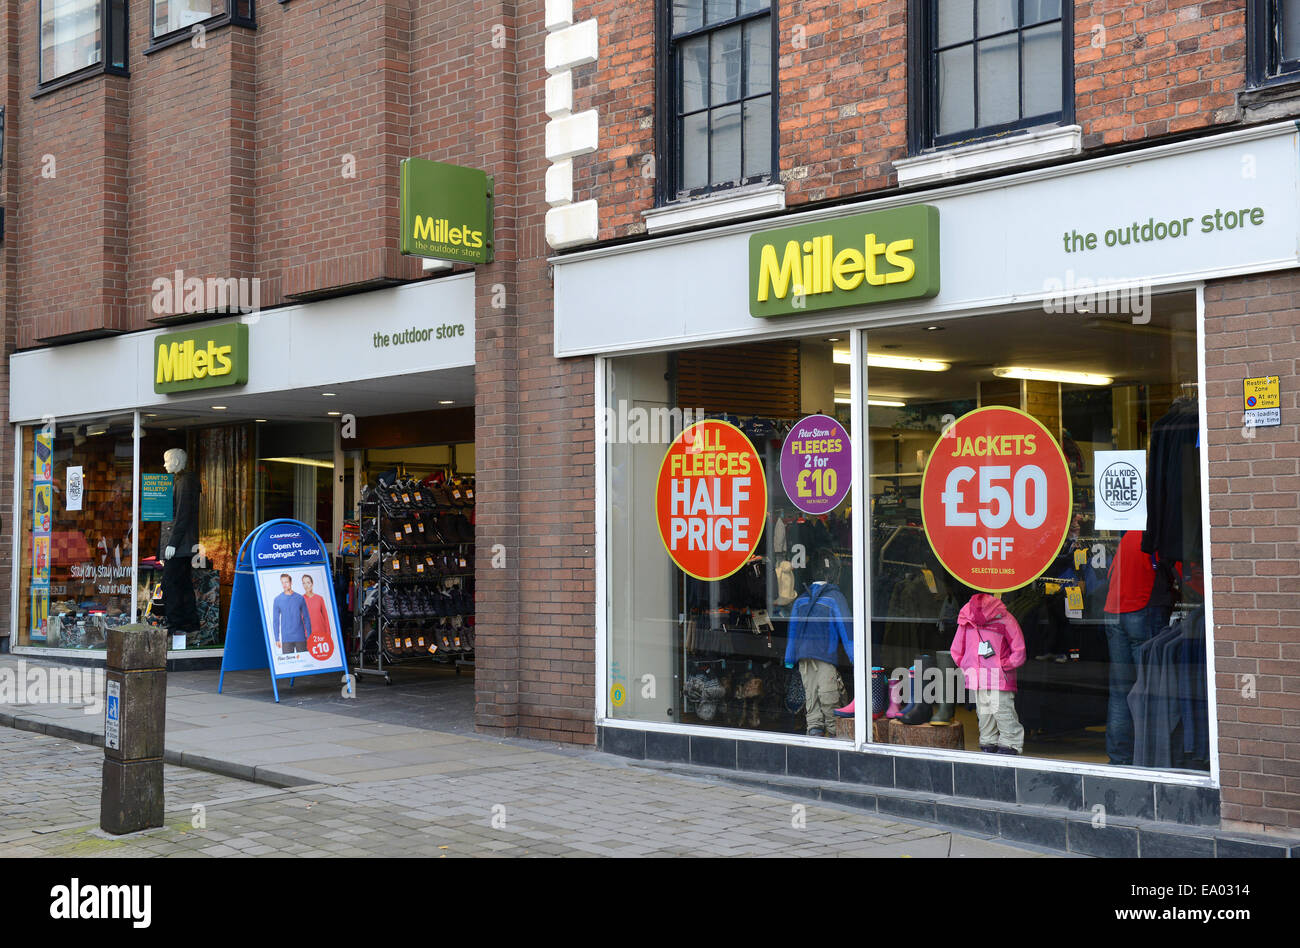 Millets the outdoor shop shops store stores Shrewsbury Uk - Stock Image